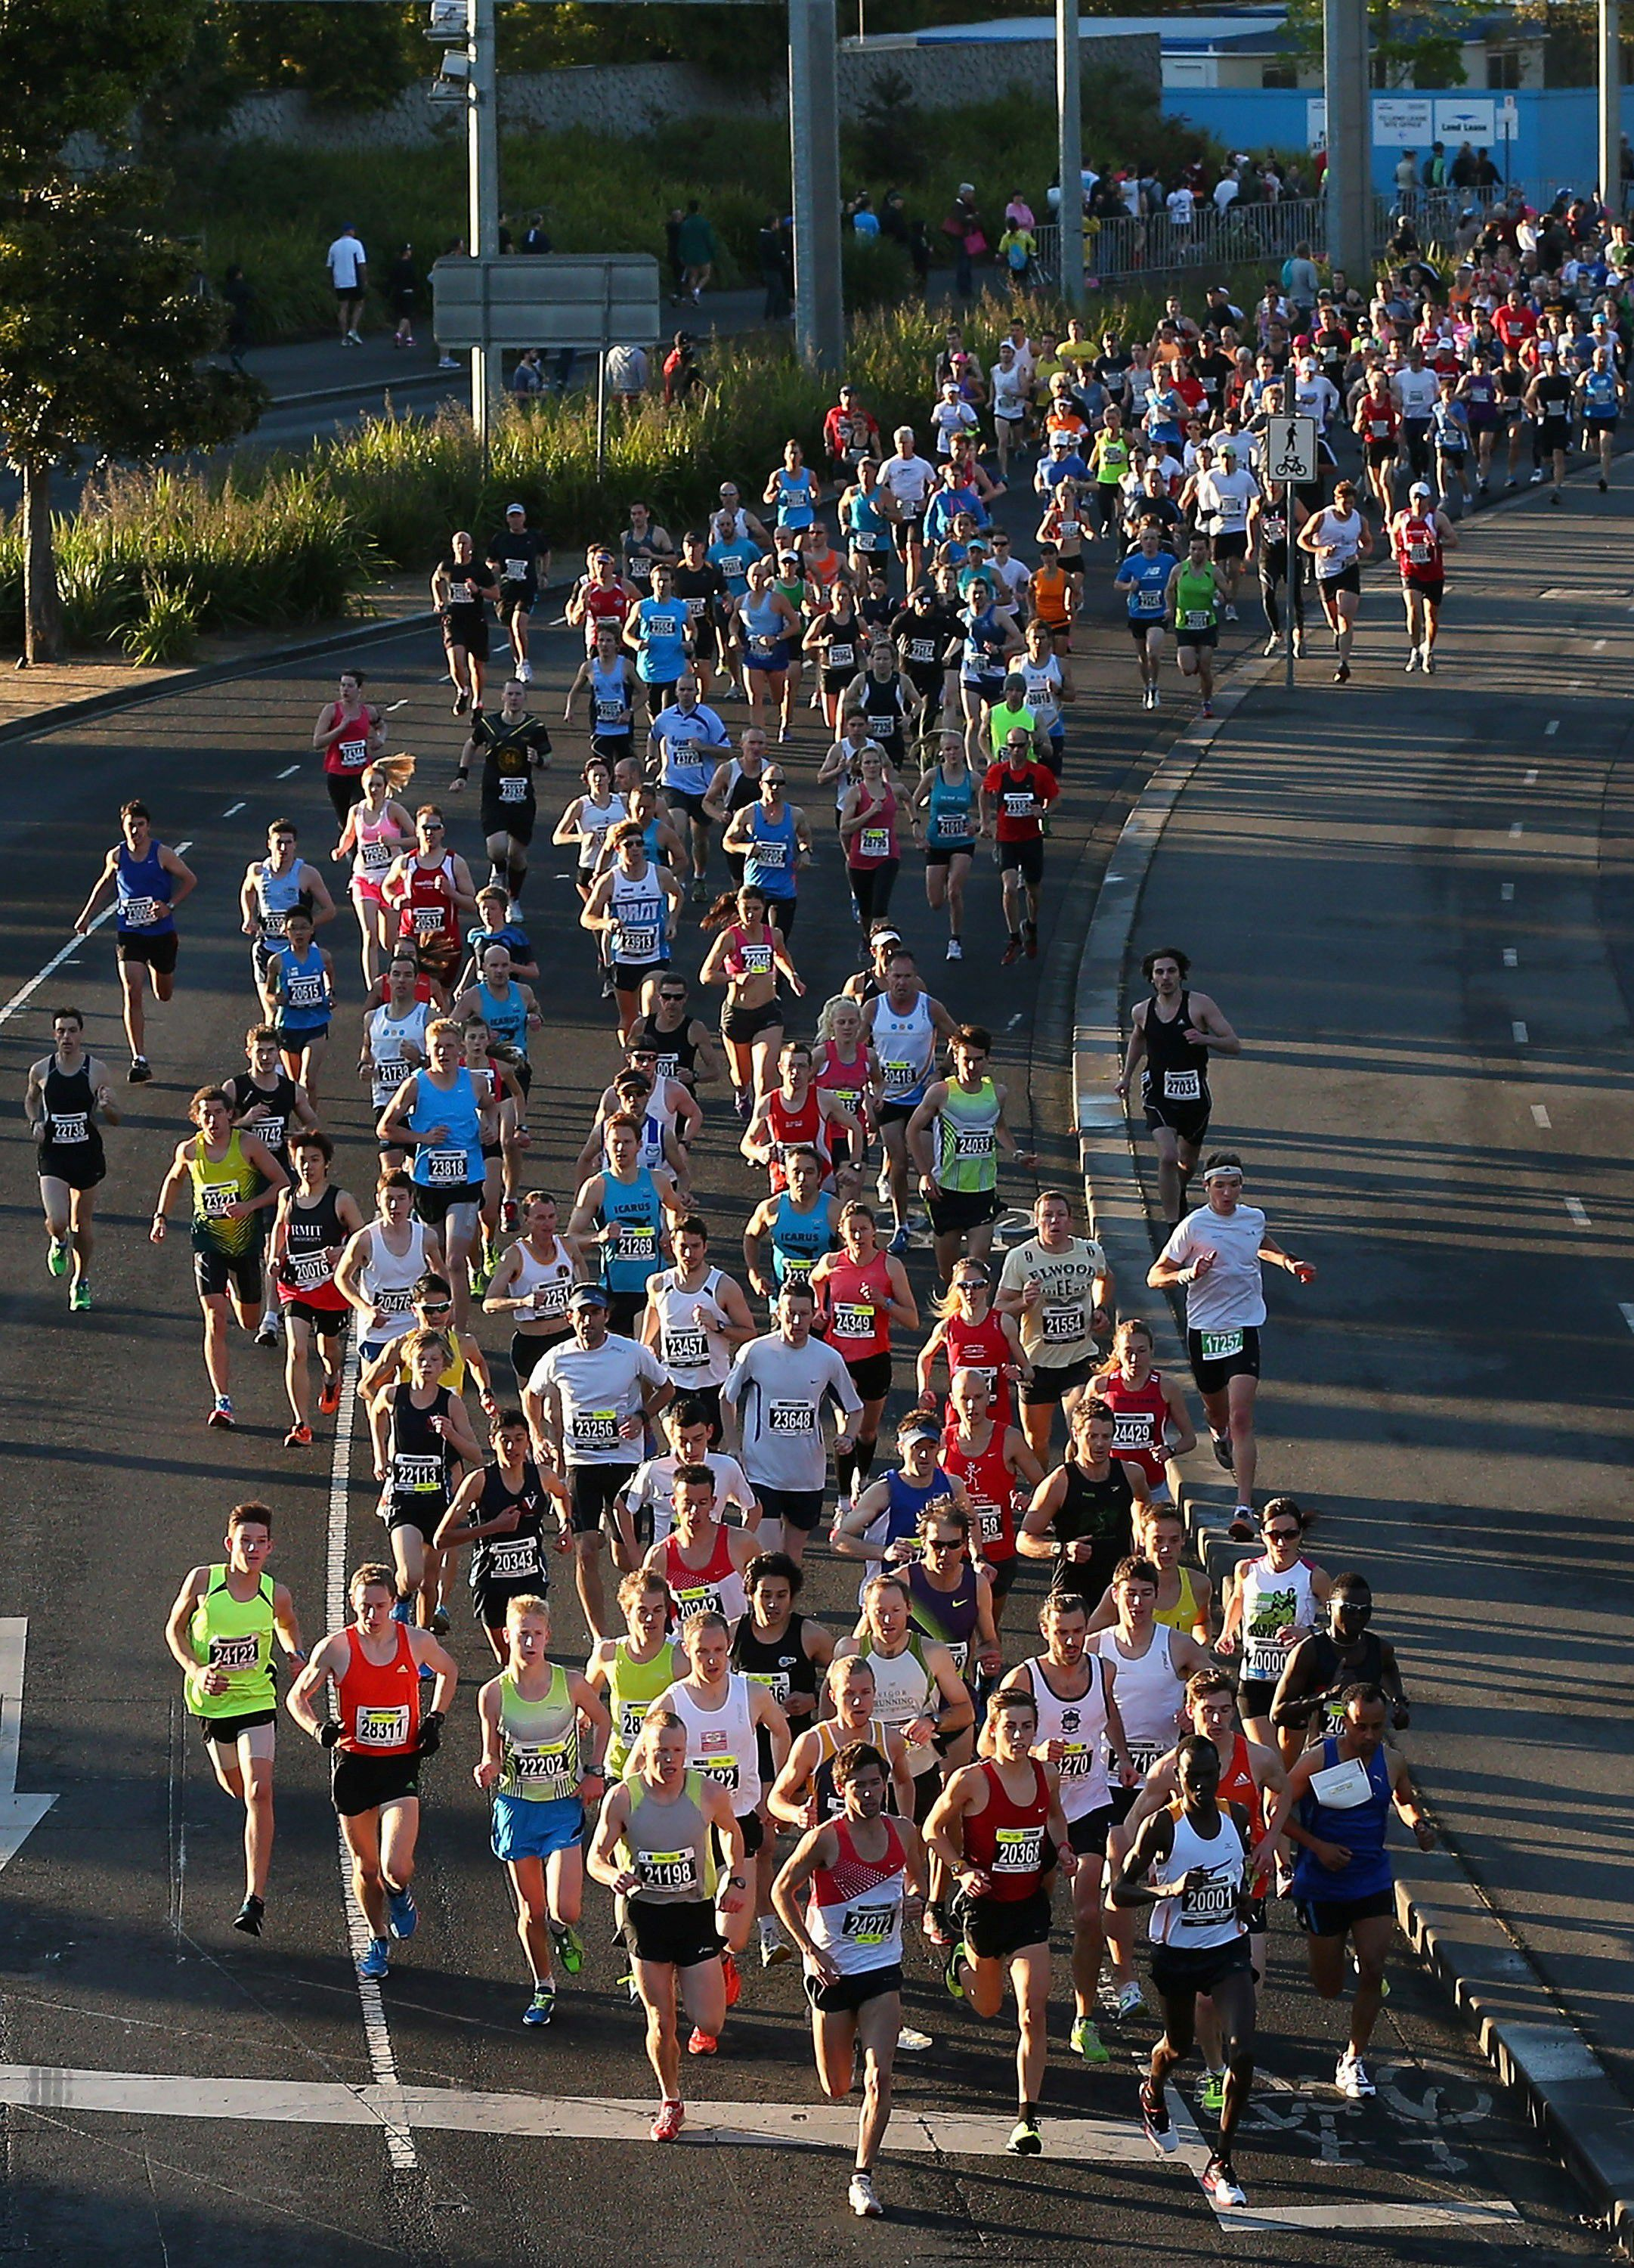 What Is a Good Time for Running a Half Marathon?